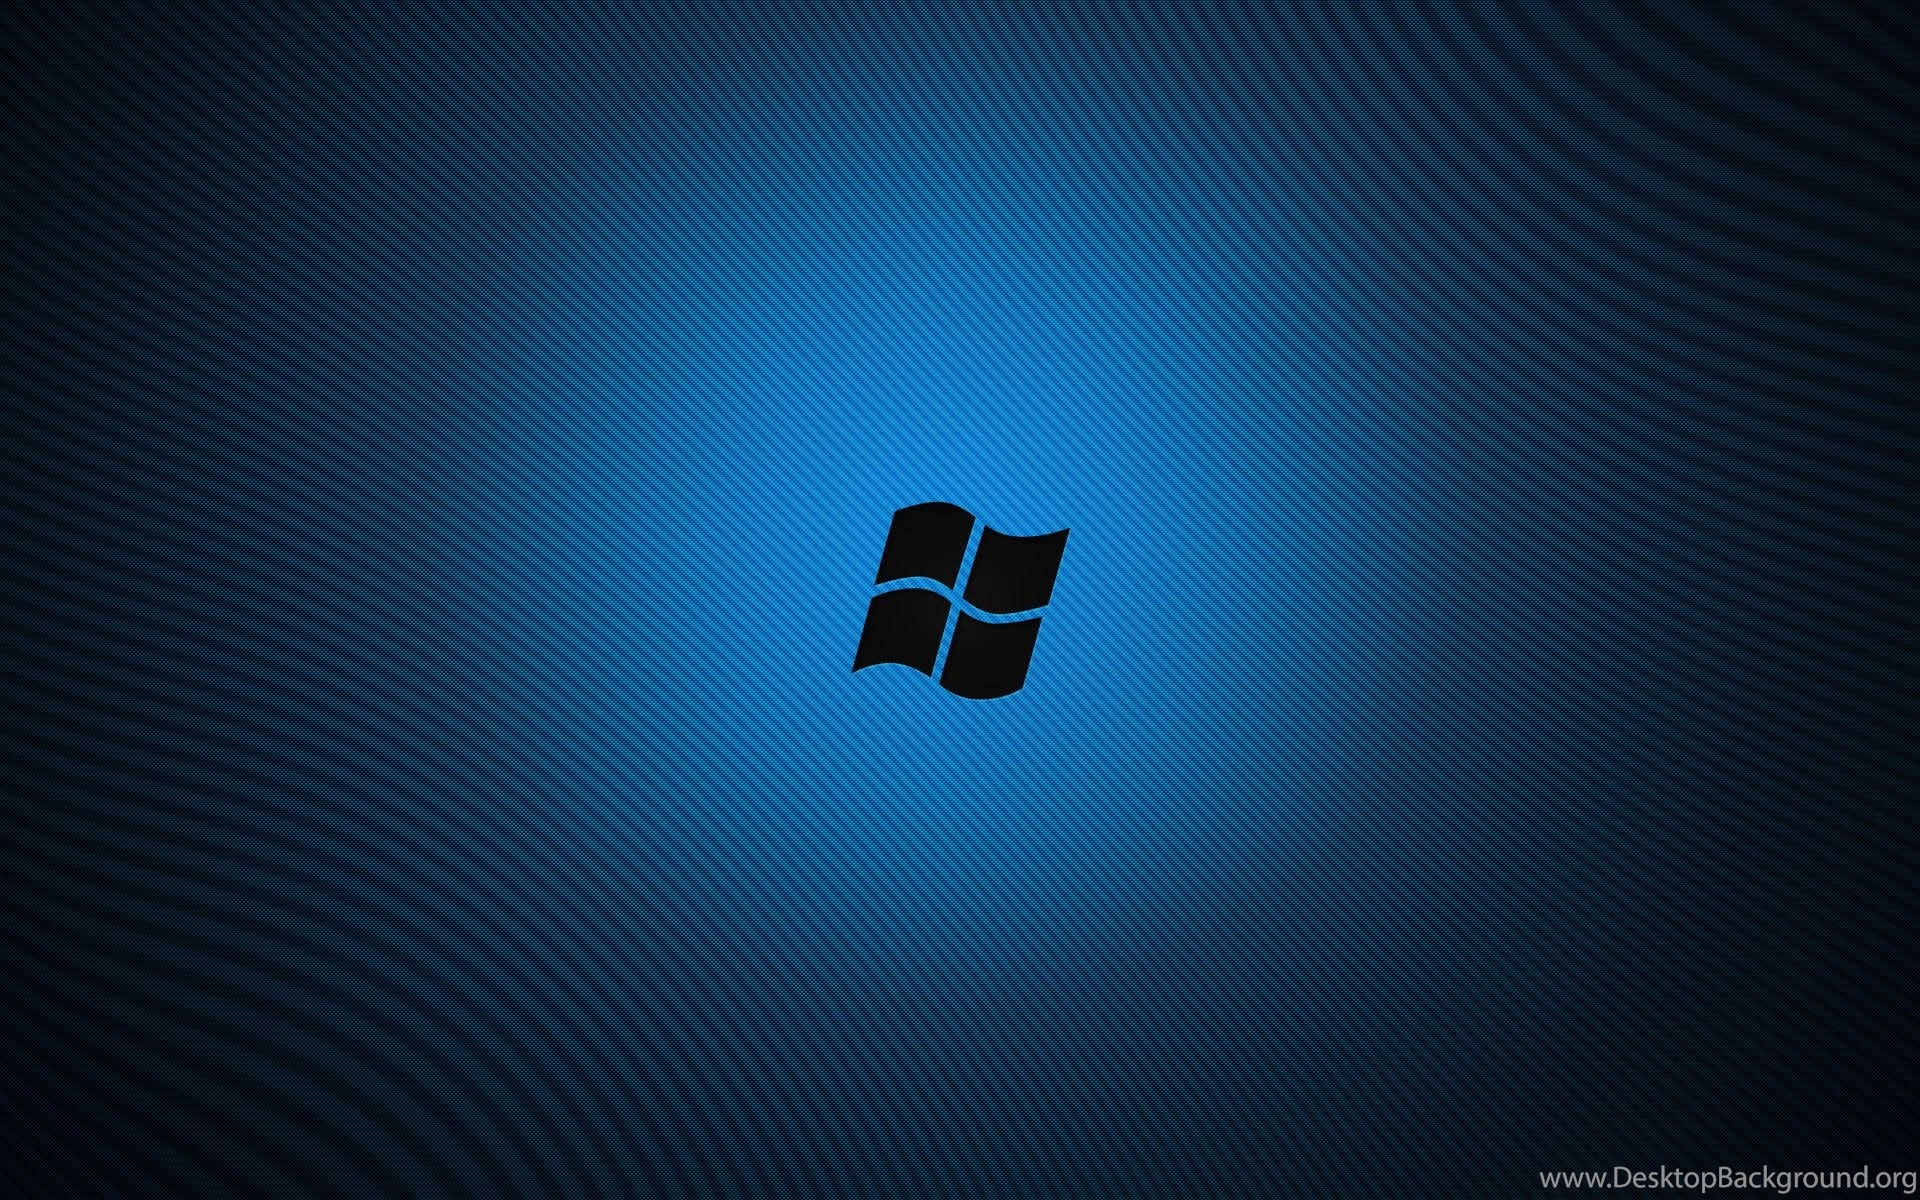 hd 3d wallpapers for windows 7 wallpapers